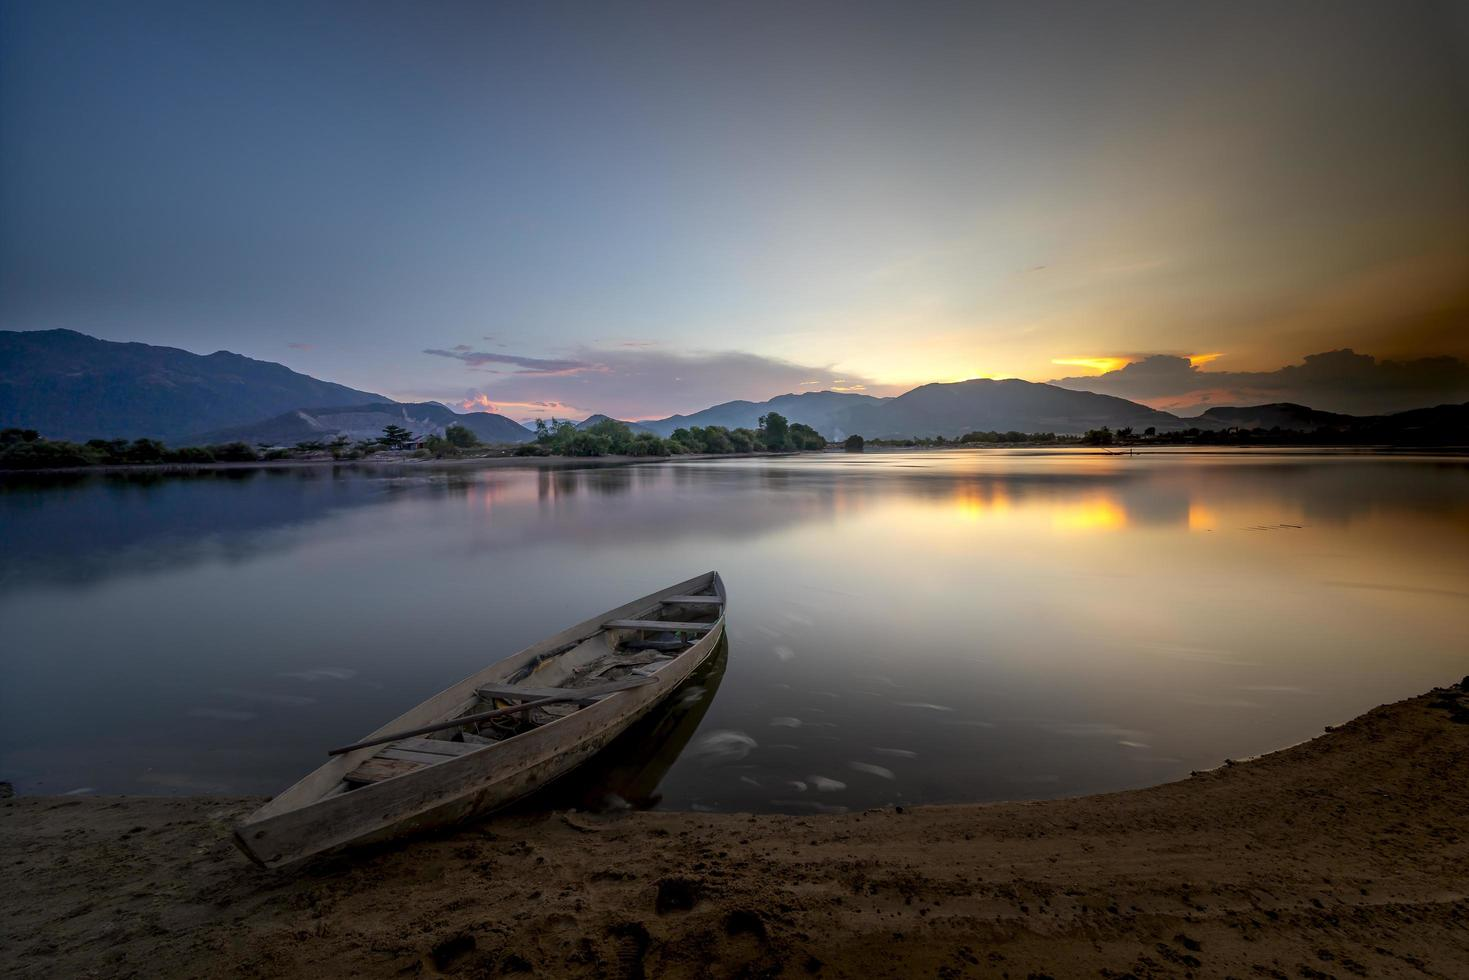 Wooden boat on shore photo